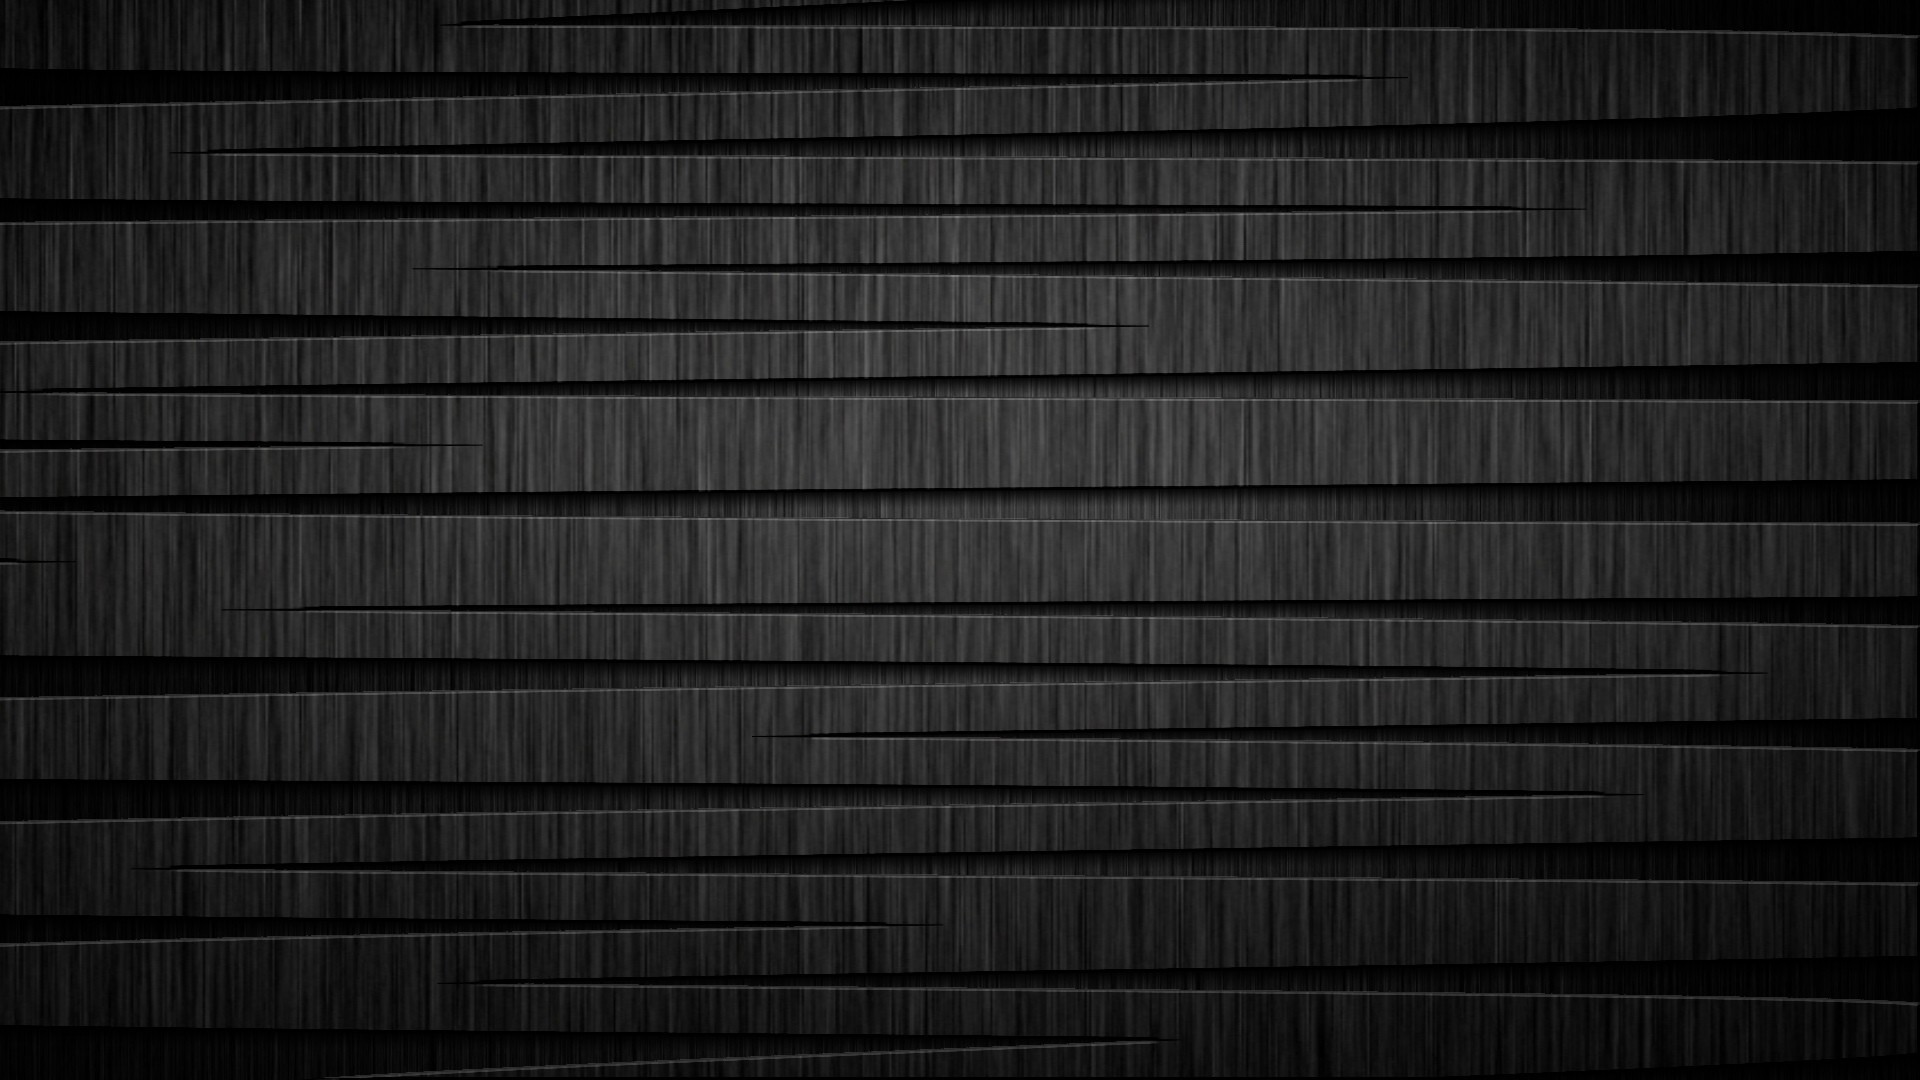 Abstract Wallpaper Black